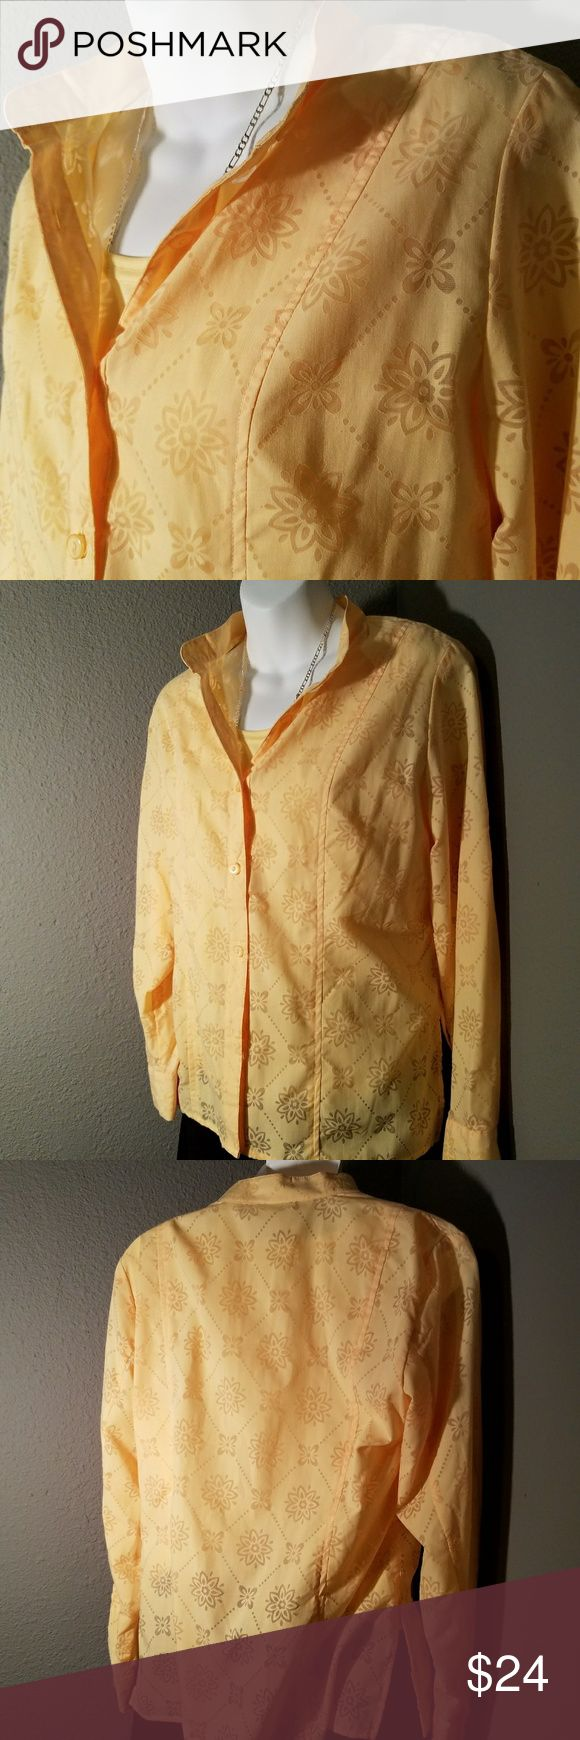 EUC Alfred Dunner yellow button down & tank 6P Sunflower yellow button down with attached tank. Bring cheerful sunshine everywhere you go in this like new top, 55% cotton and 45% polyester. Mandarin collar and button straps to fold sleeves  6P Alfred Dunner Tops